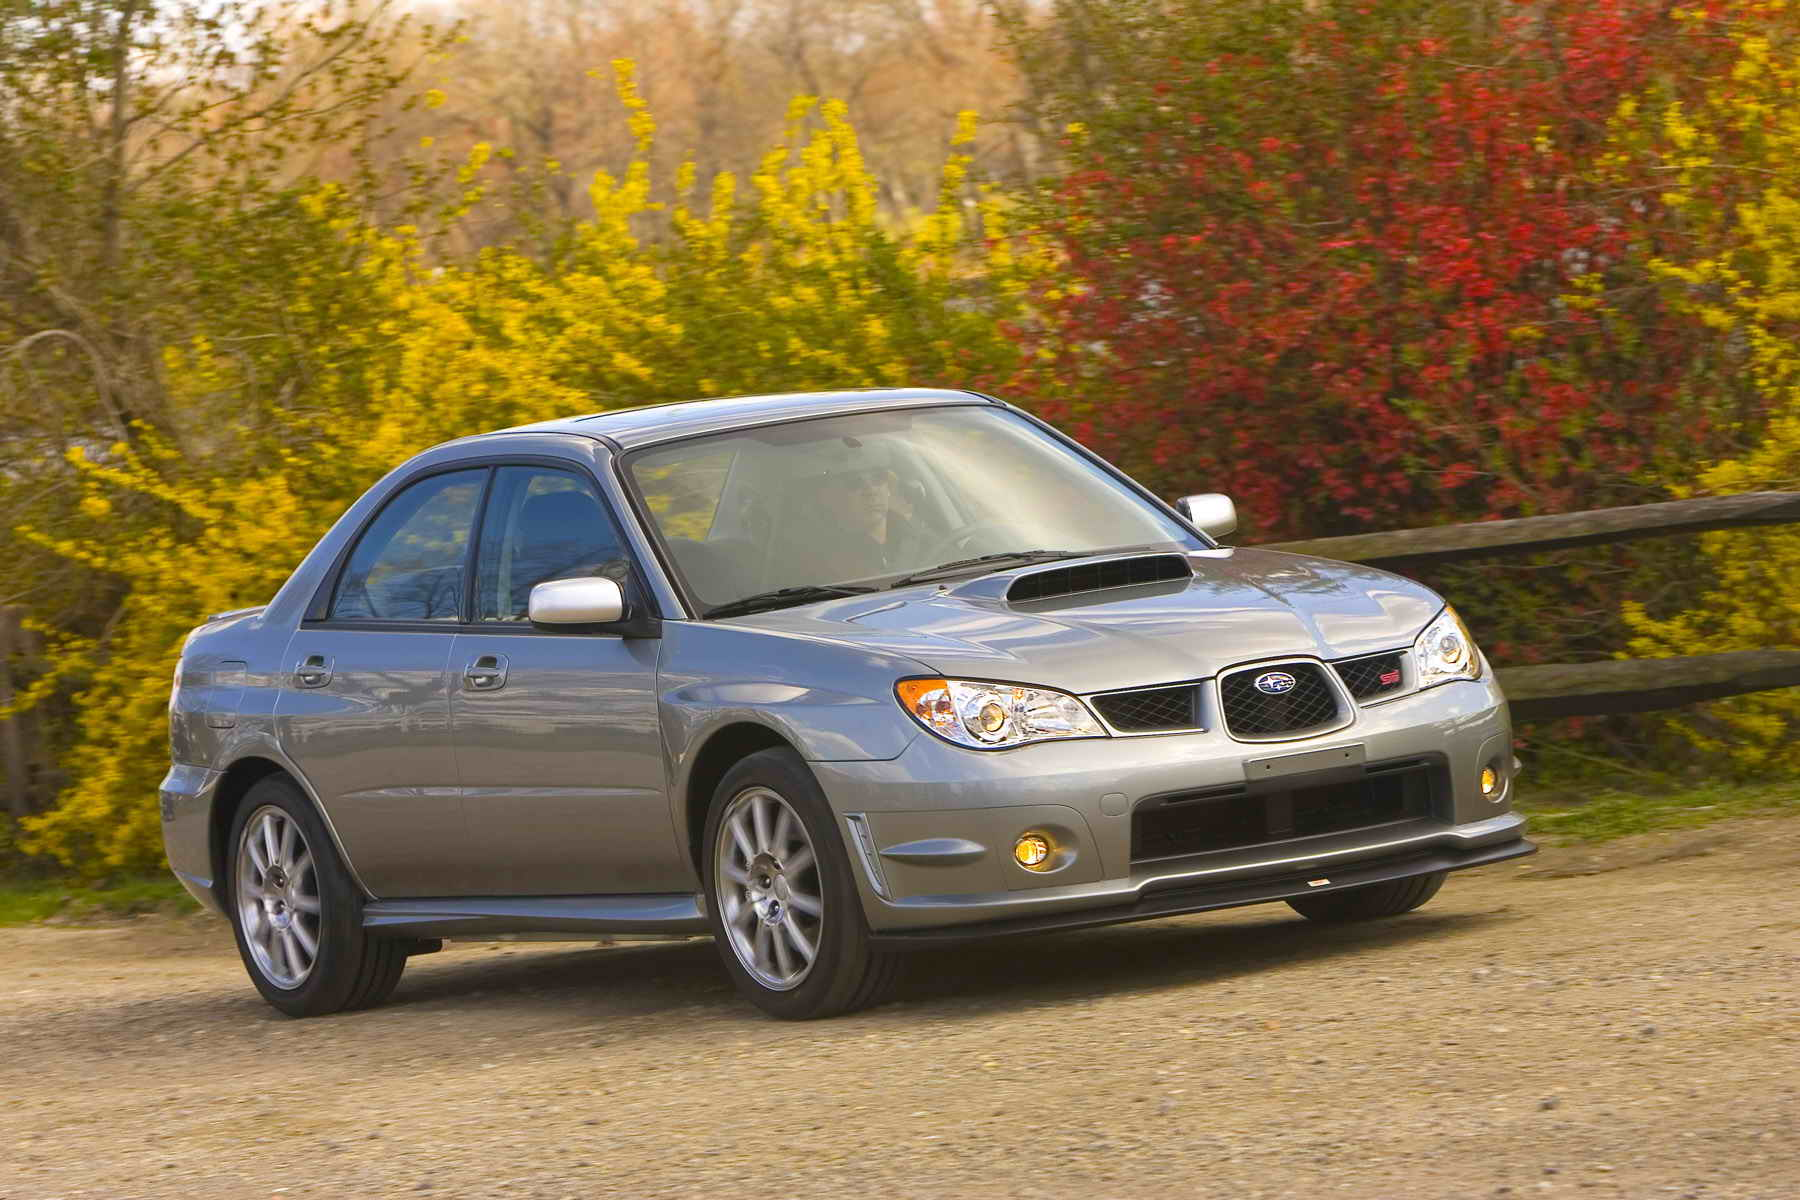 2007 subaru impreza wrx sti limited review gallery top speed. Black Bedroom Furniture Sets. Home Design Ideas